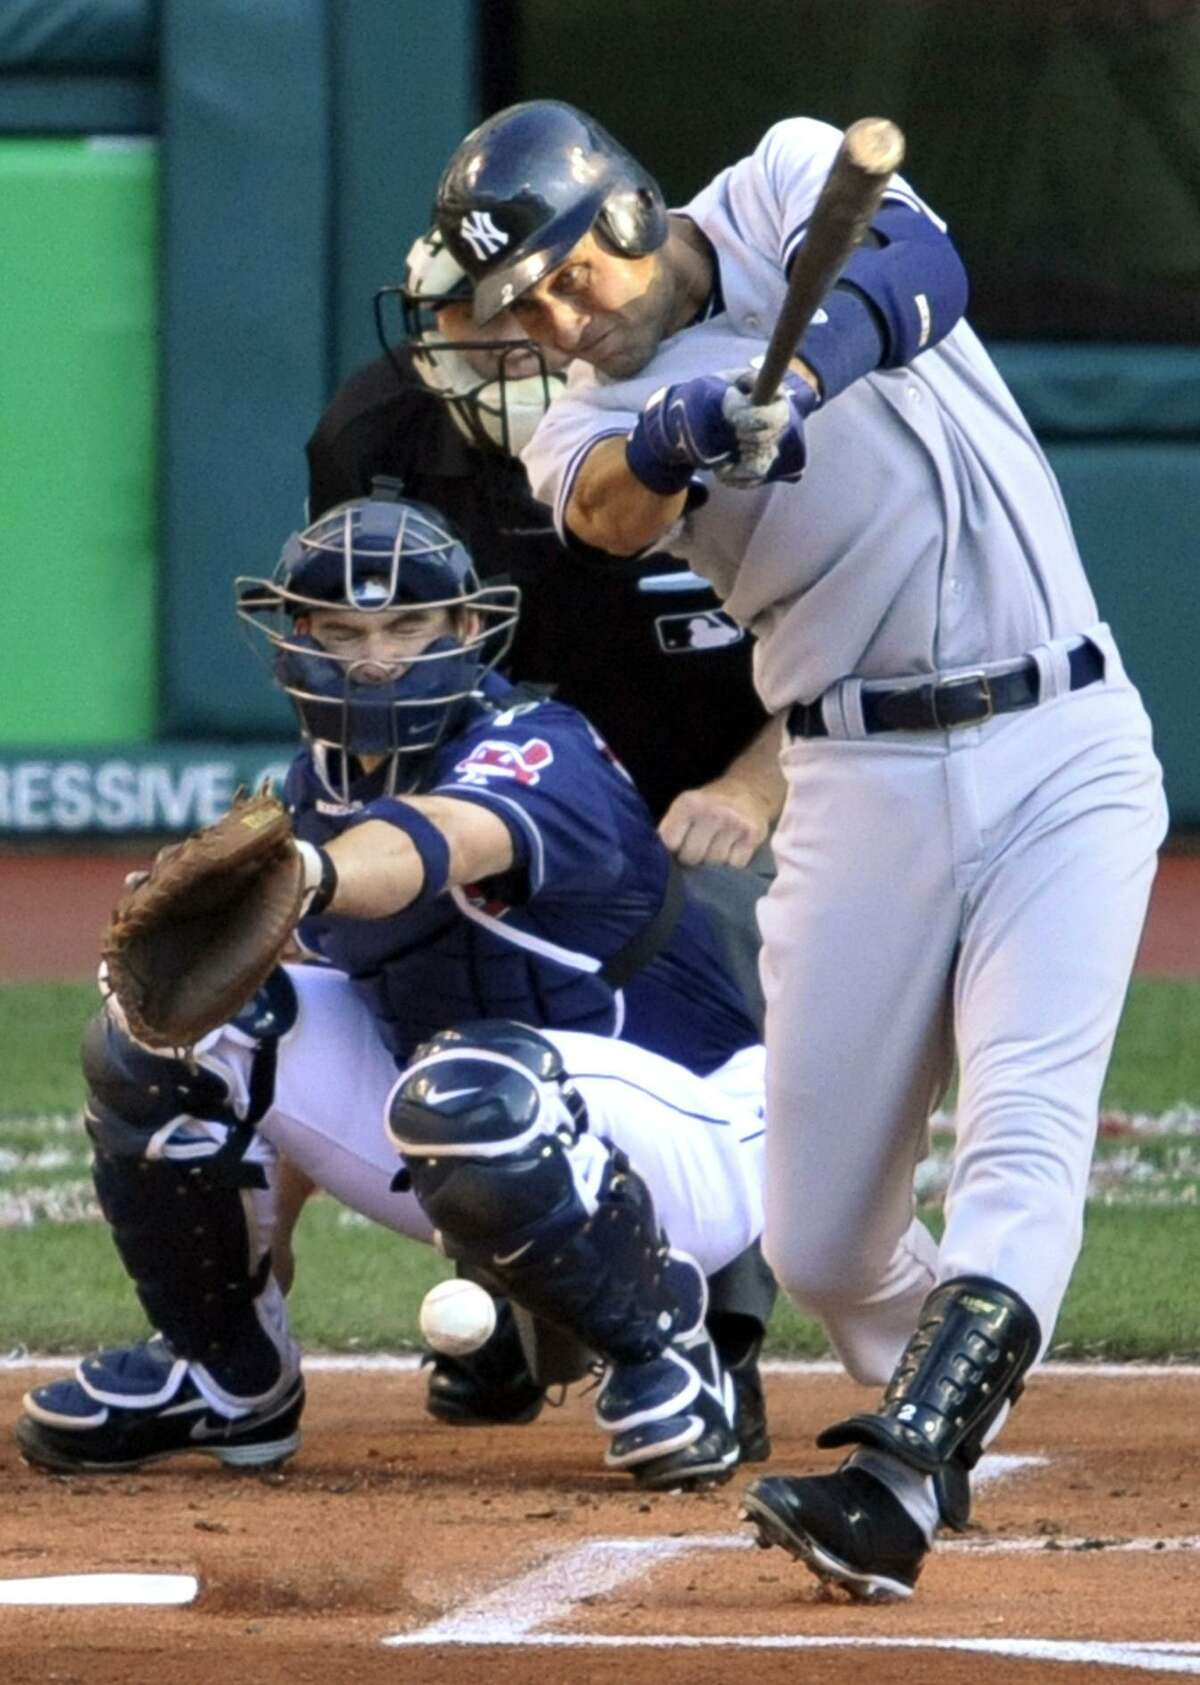 The Yankees' Derek Jeter hits a single off Cleveland Indians starting pitcher Carlos Carrasco in the first inning of Tuesday's game. Jeter finished with 2 hits, giving him 2,996, as the Yankees won 9-2. (AP Photo)